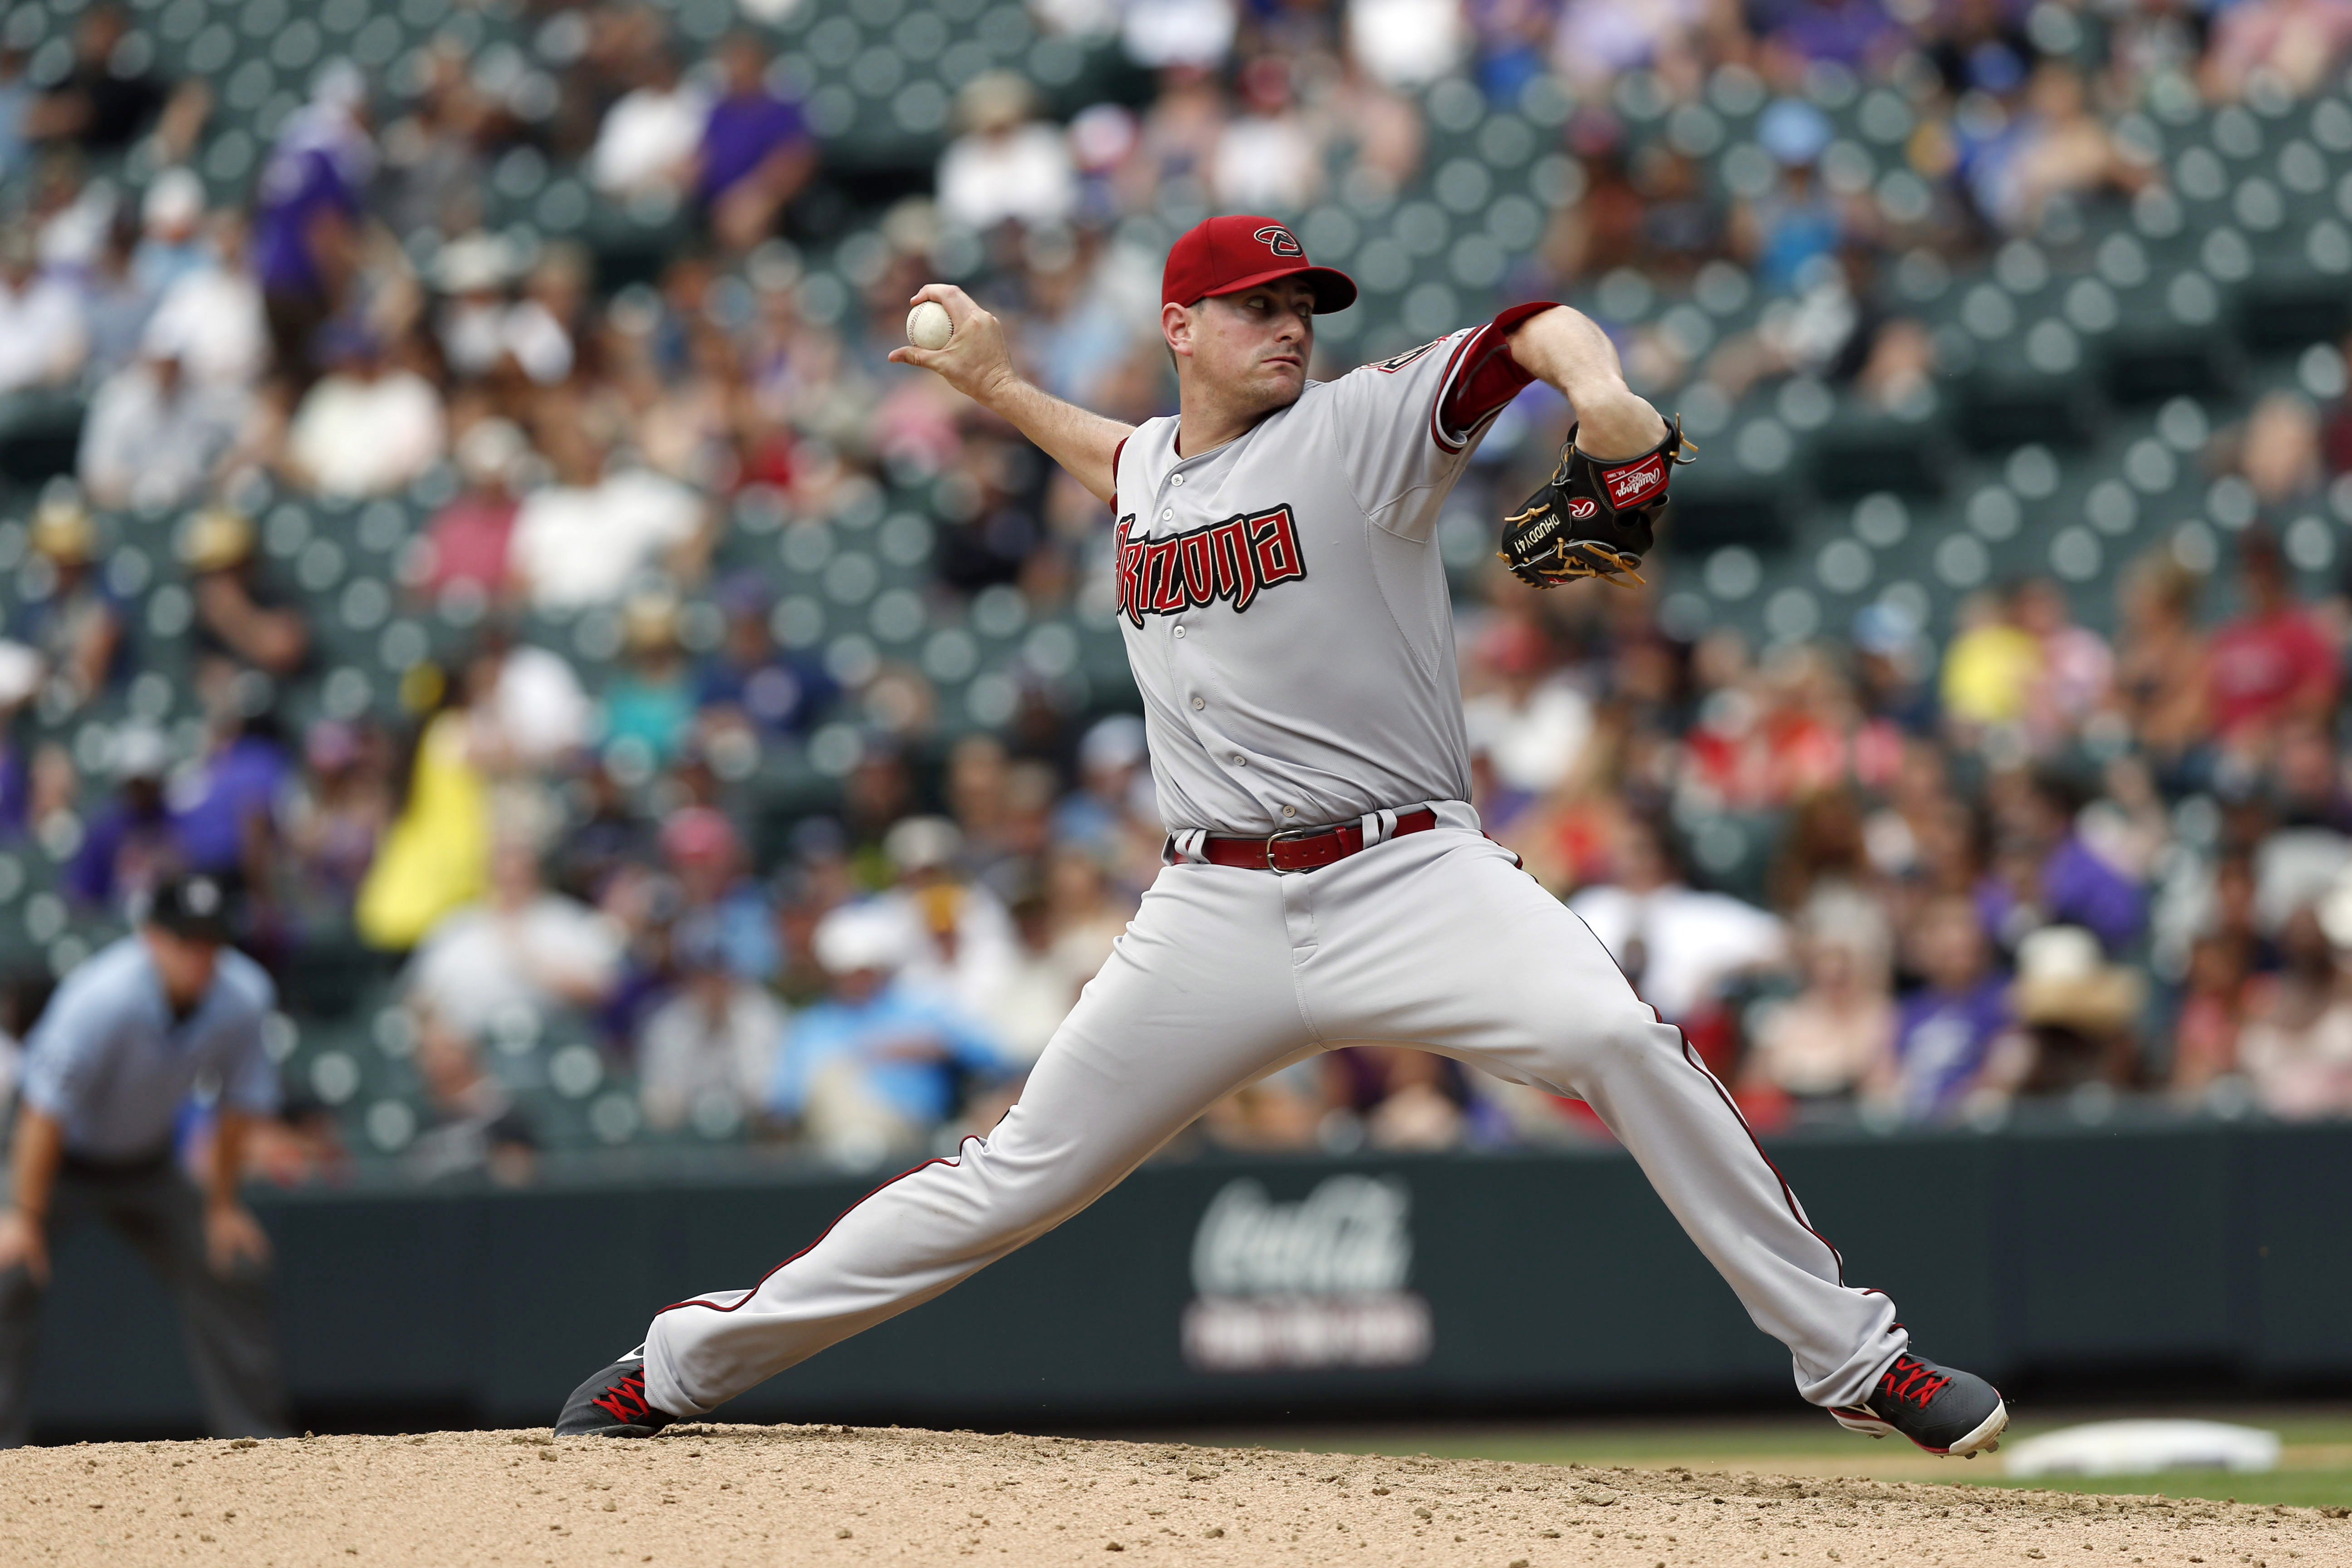 FILE - In this June 25, 2015, file photo, Arizona Diamondbacks relief pitcher Daniel Hudson (41) works against the Colorado Rockies in the eighth inning of a baseball game, in Denver. After two Tommy John surgeries, 2015 was a season of triumph for Daniel